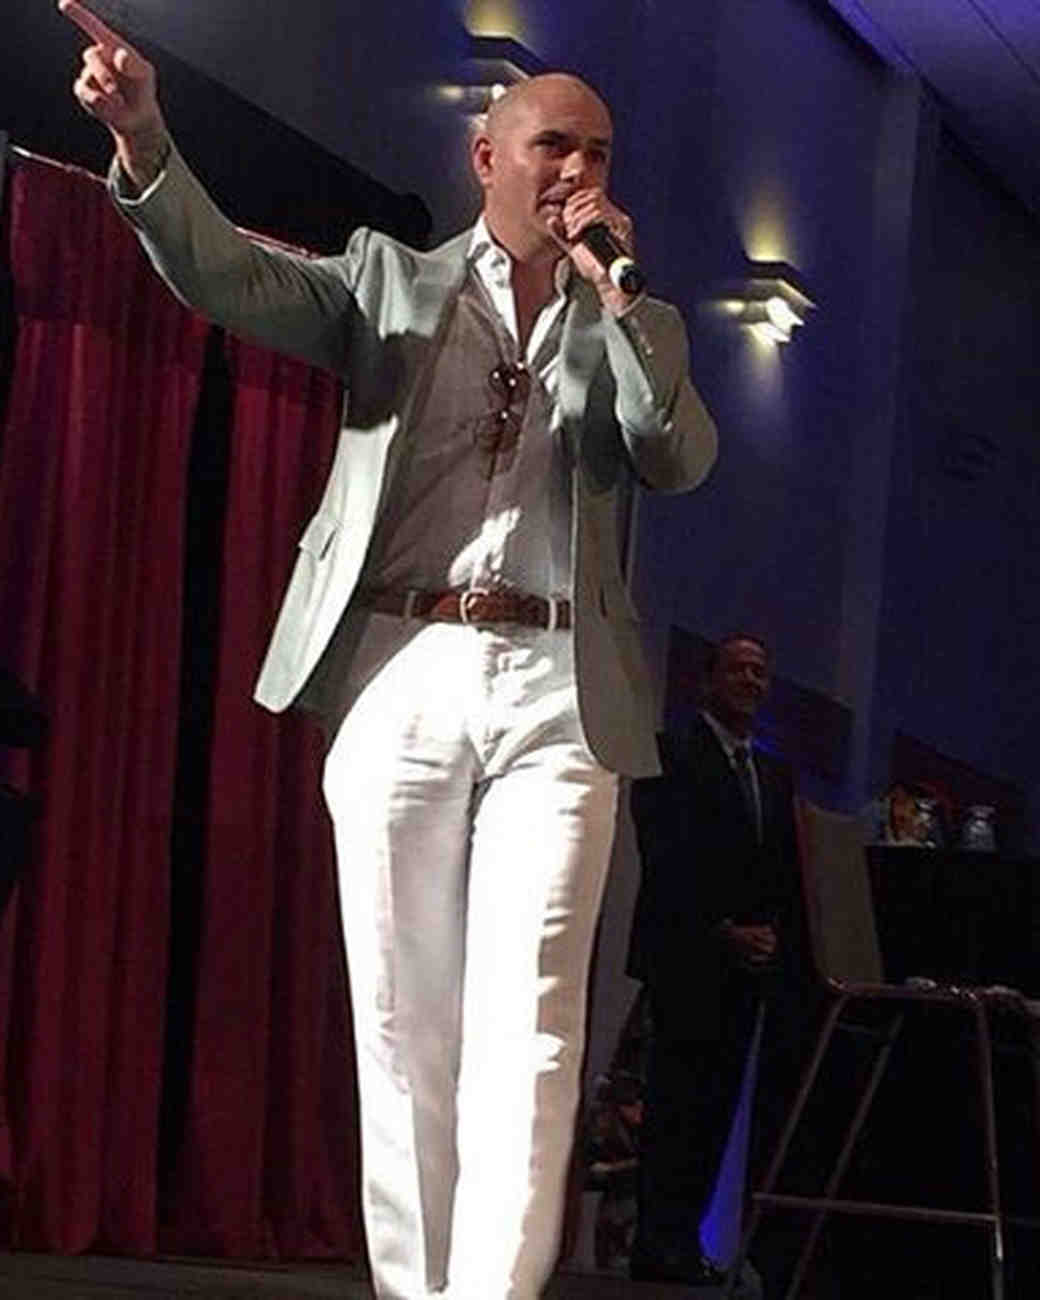 celebrity-wedding-singers-pitbull-1215.jpg